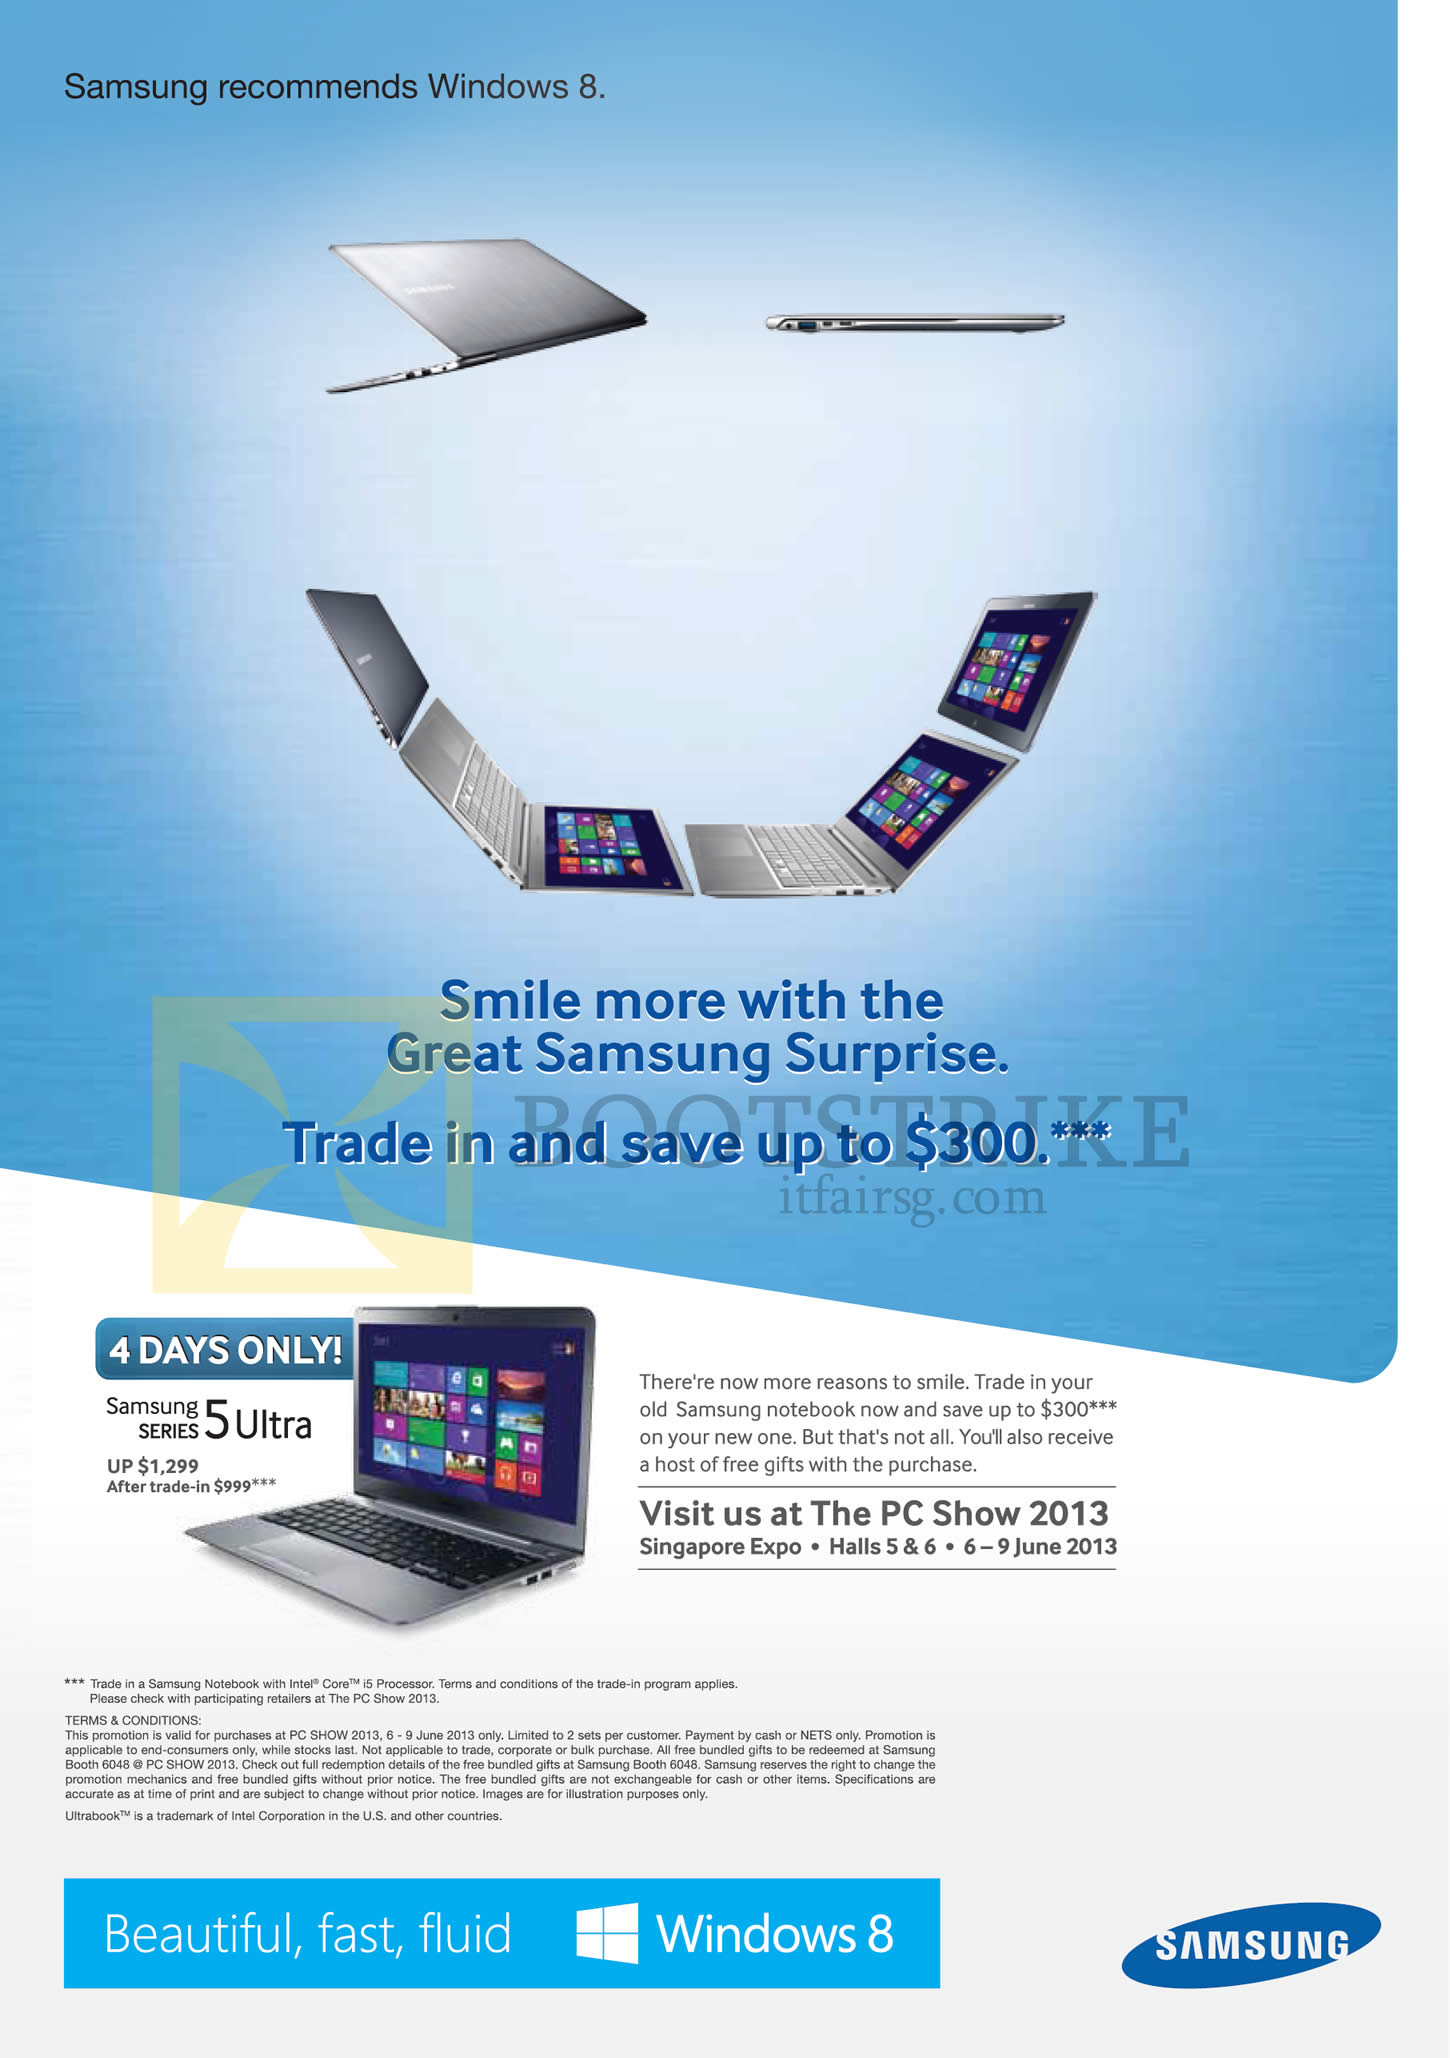 Samsung notebook in singapore - Pc Show 2013 Price List Image Brochure Of Samsung Notebook Series 5 Ultra Trade In